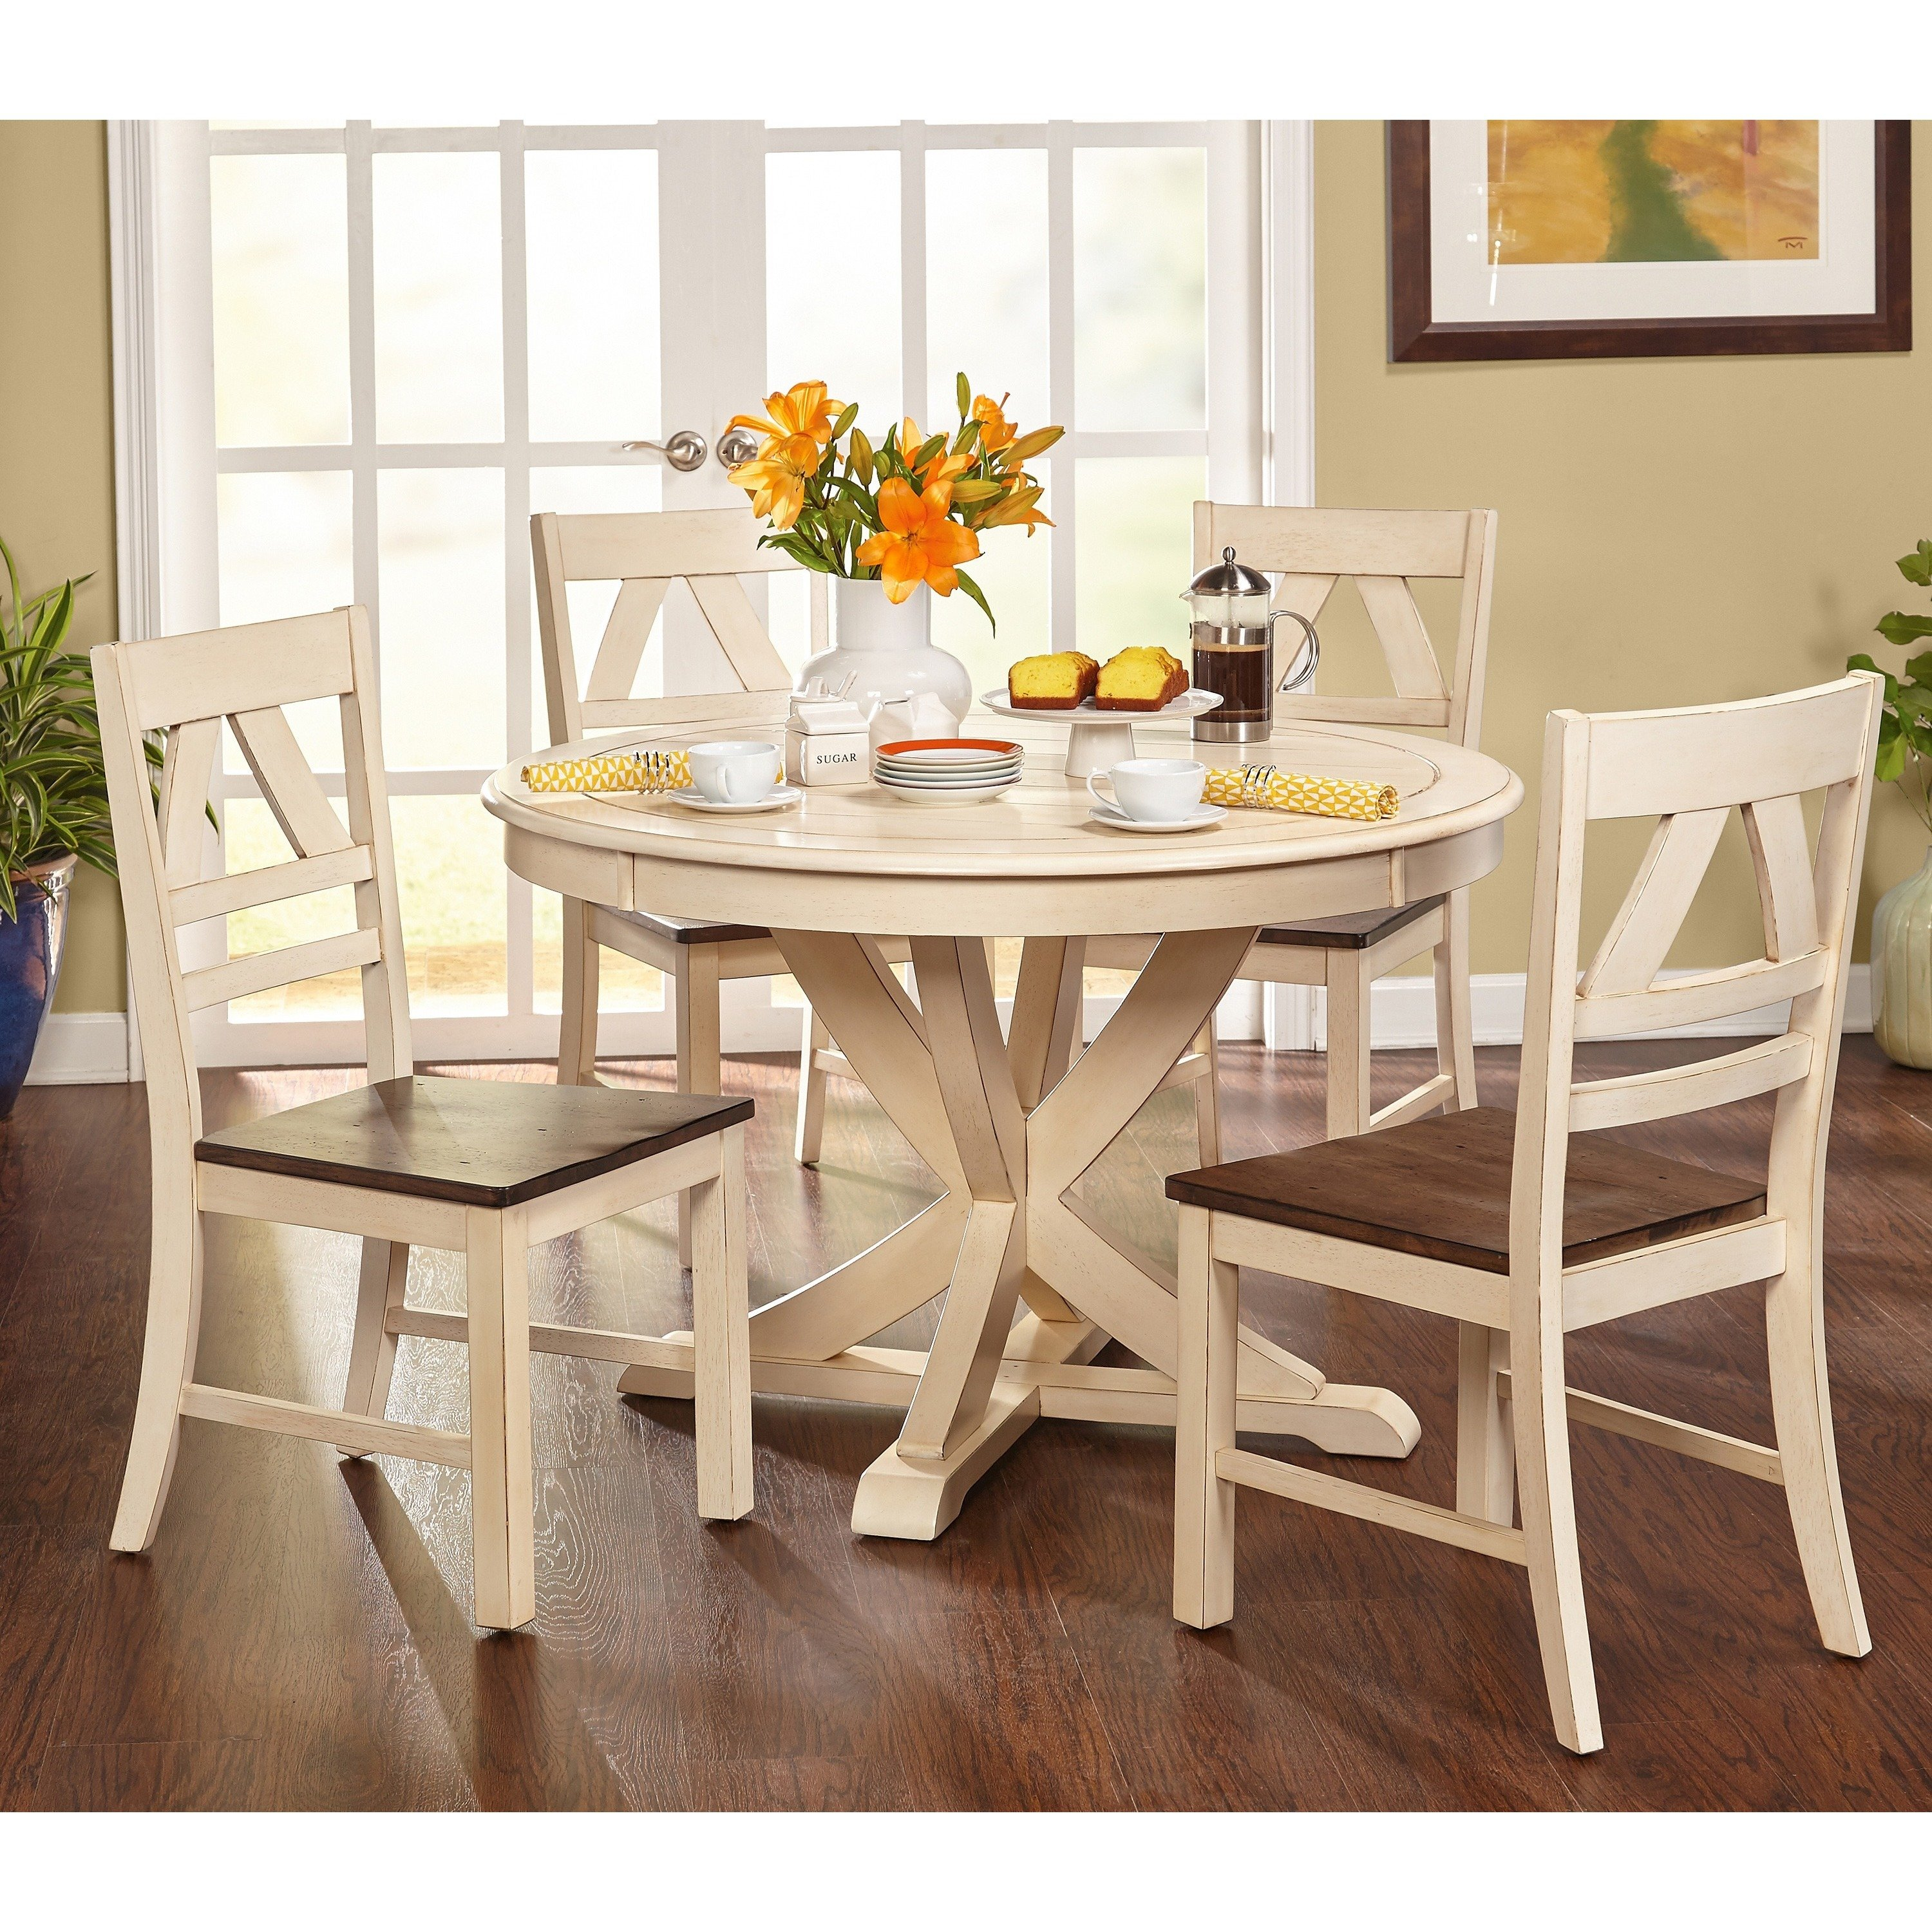 Shop Simple Living Vintner Country Style Dining Set Free Shipping throughout 13 Smart Ideas How to Make Country Style Living Room Sets